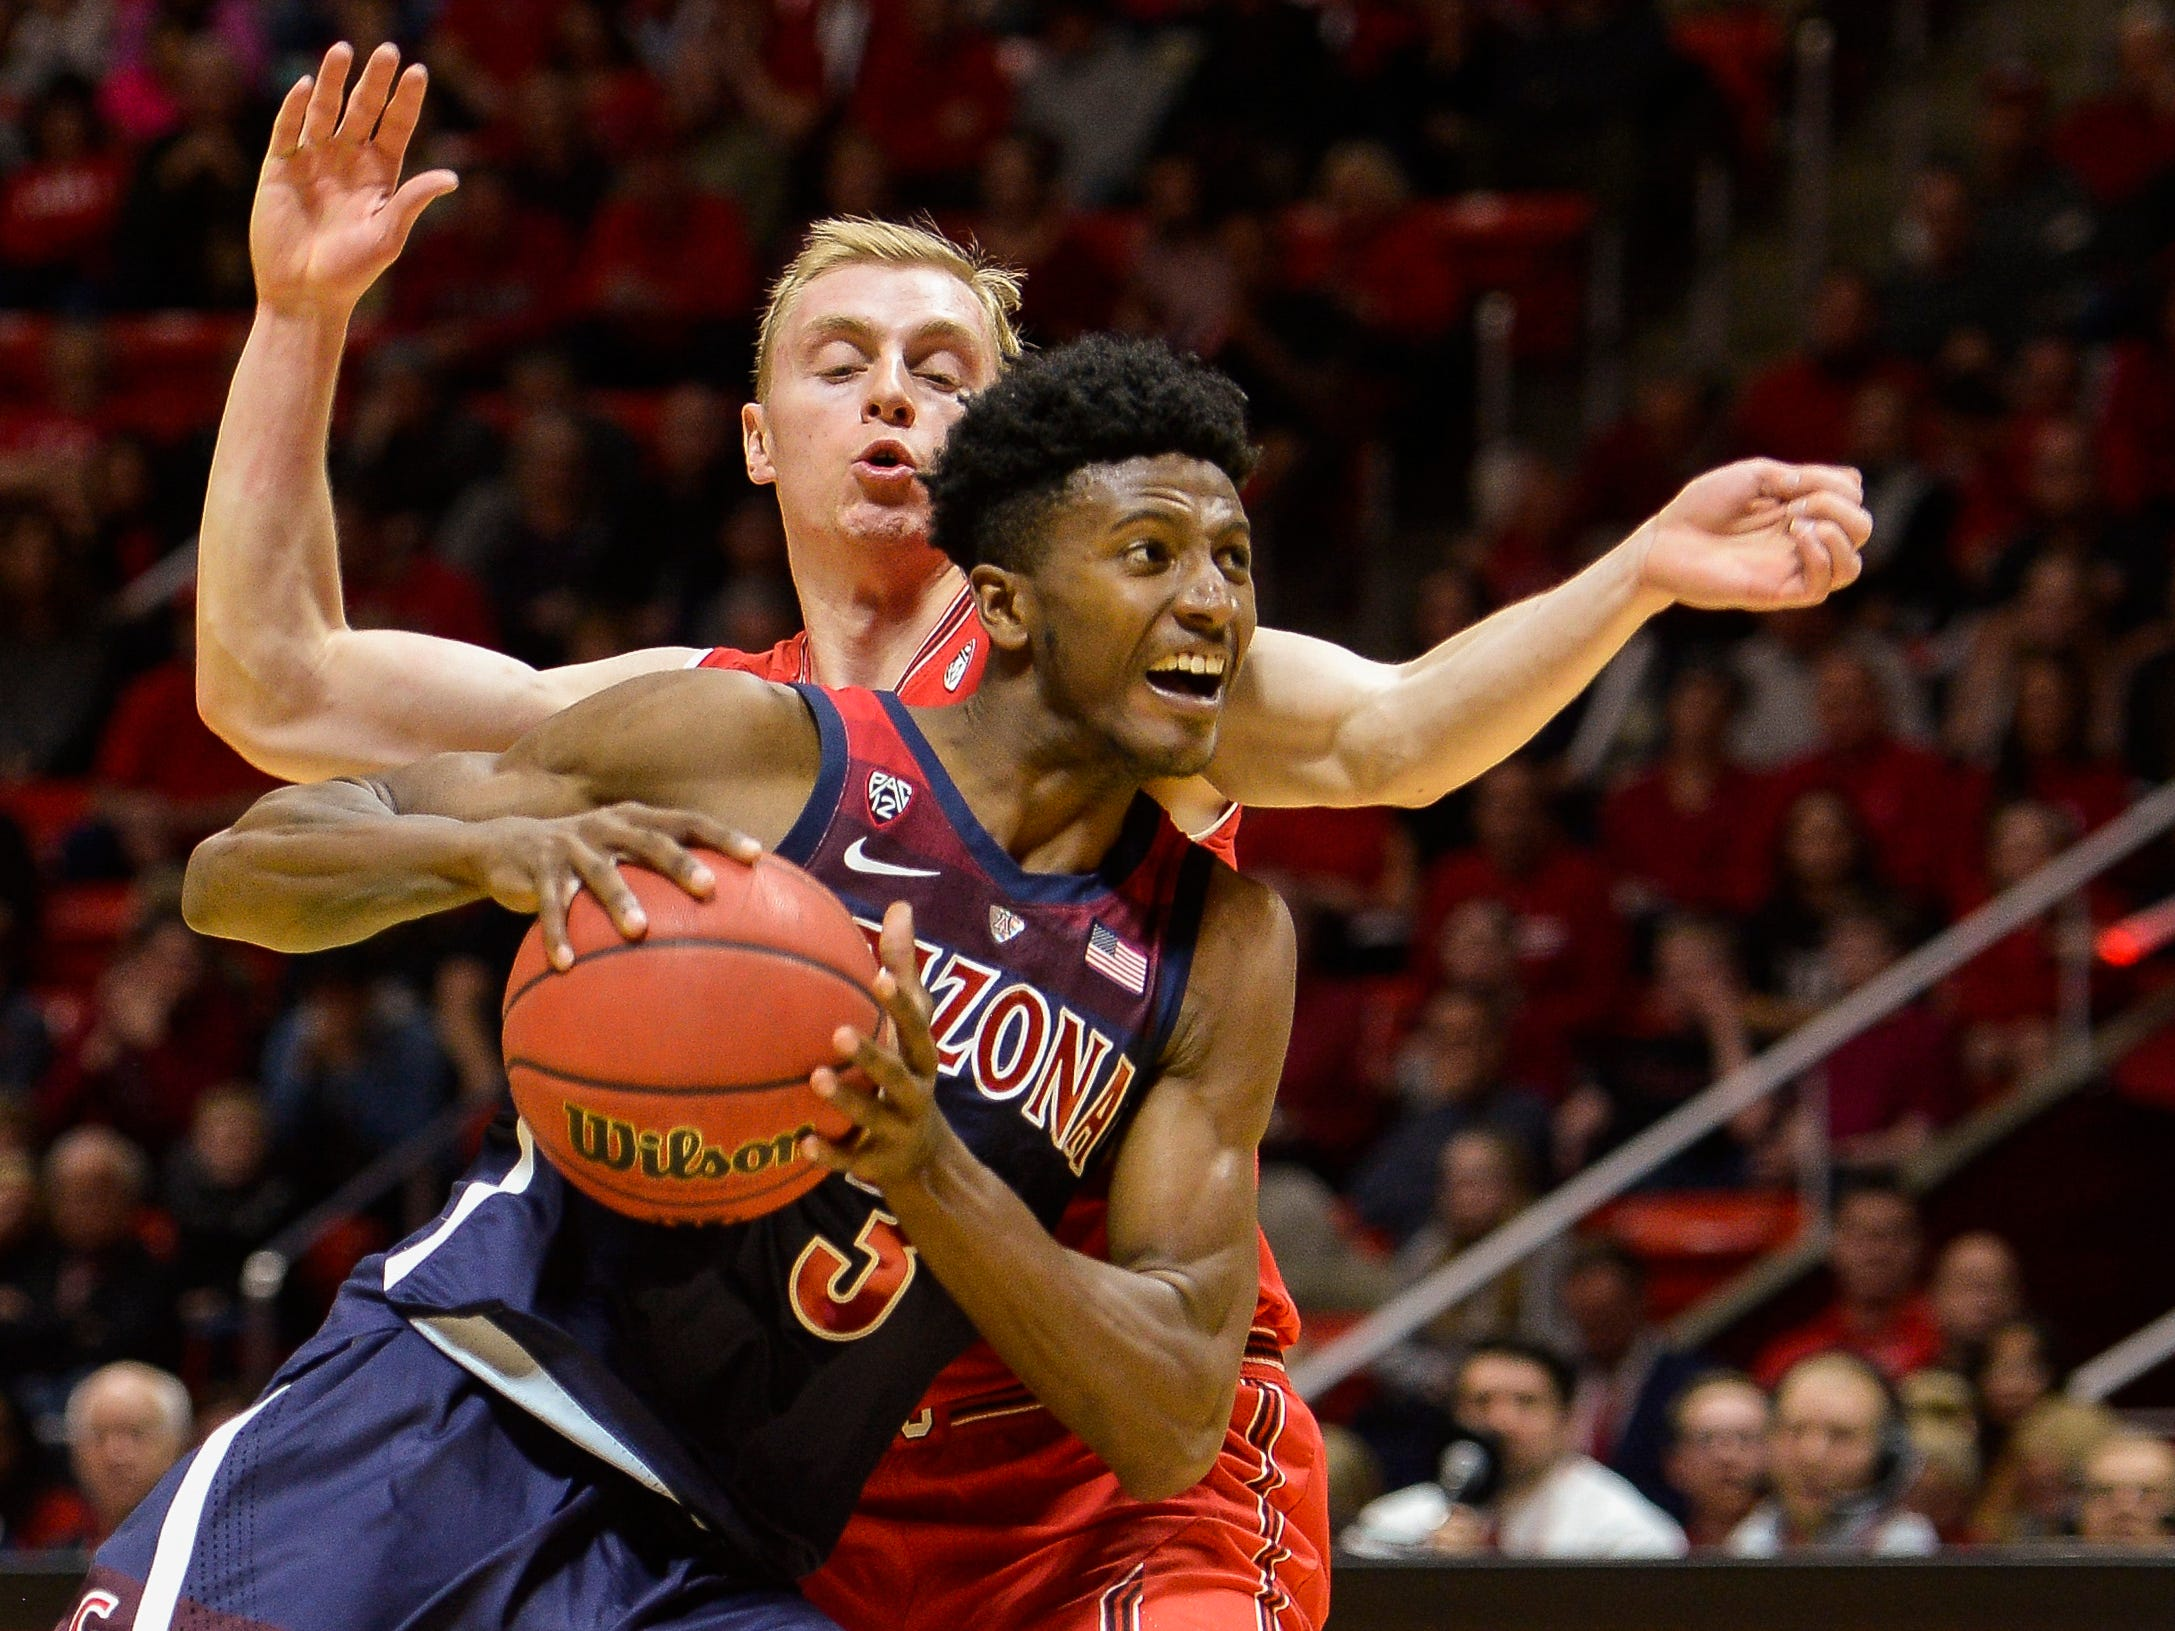 Arizona guard Dylan Smith, front, attempts to drive past Utah guard Parker Van Dyke, rear, during the first half of an NCAA college basketball game Thursday, Feb. 14, 2019, in Salt Lake City.